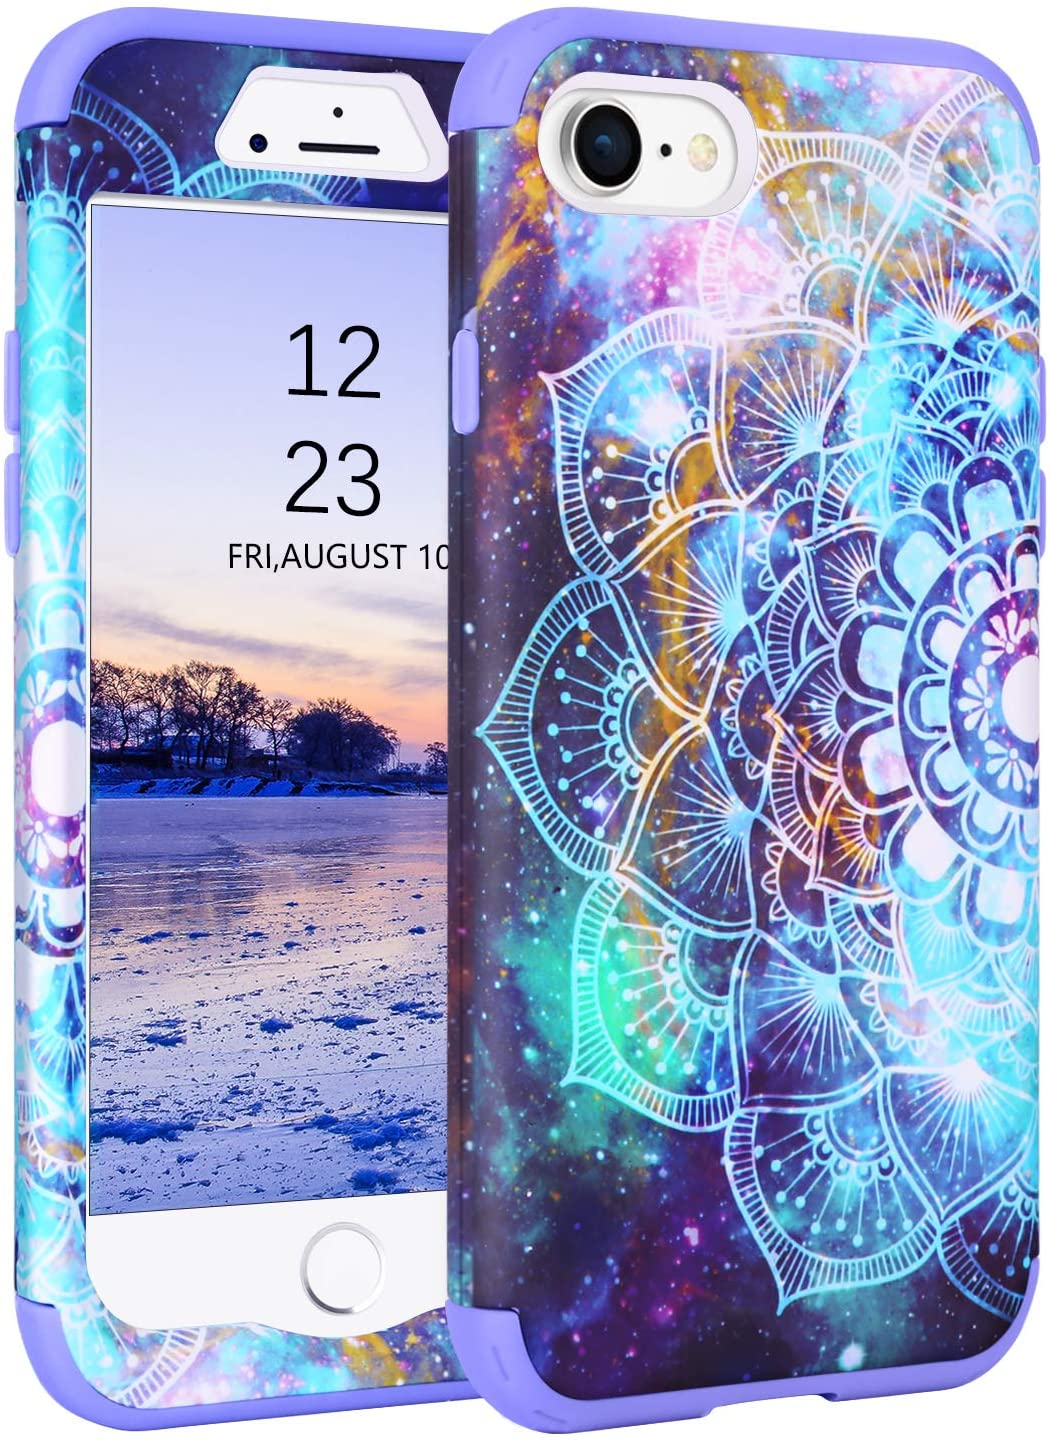 GUAGUA iPhone SE 2020 Case iPhone 8 Case iPhone 7 Case Mandala Flowers Stars Space Nebula Hybrid 3 in 1 Hard PC Soft TPU Cover Bumper Shockproof Protective Cases for iPhone 8/7/SE 2020 Purple